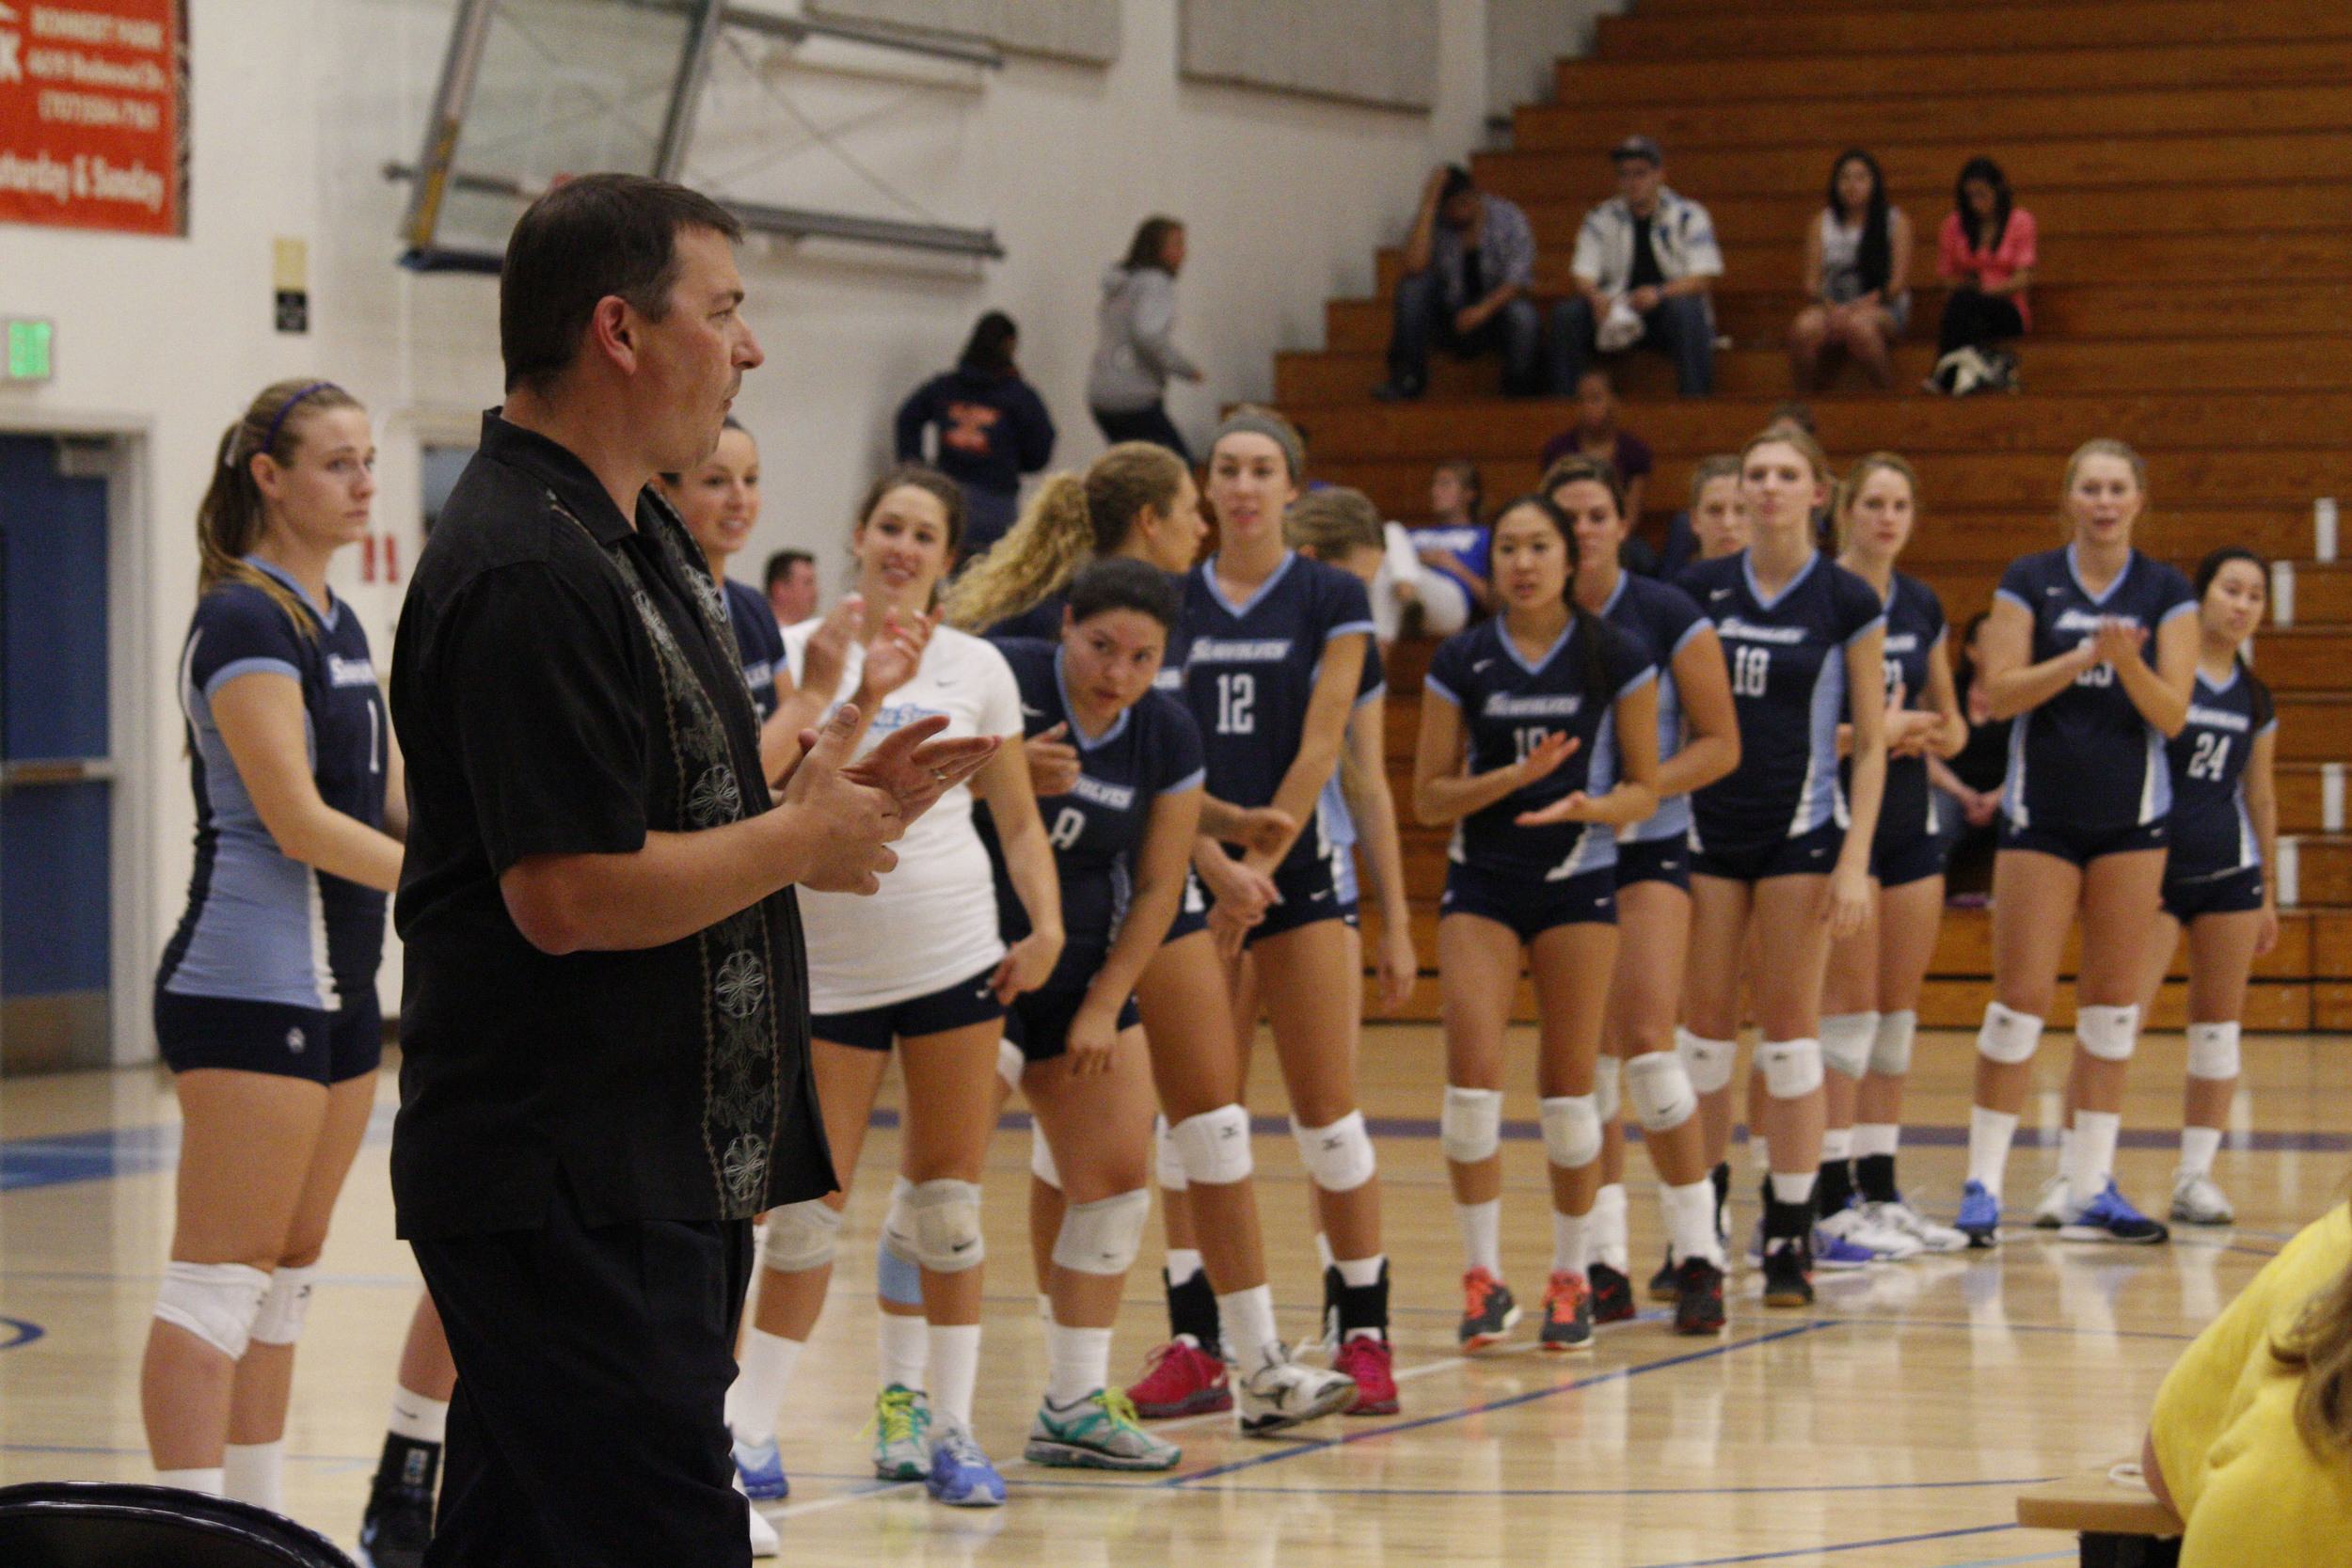 STAR // Spencer Vaishville    Top and bottom, Friday's win marked Coach Grassl's 200th win in his 12-year career as a volleyball coach at SSU.